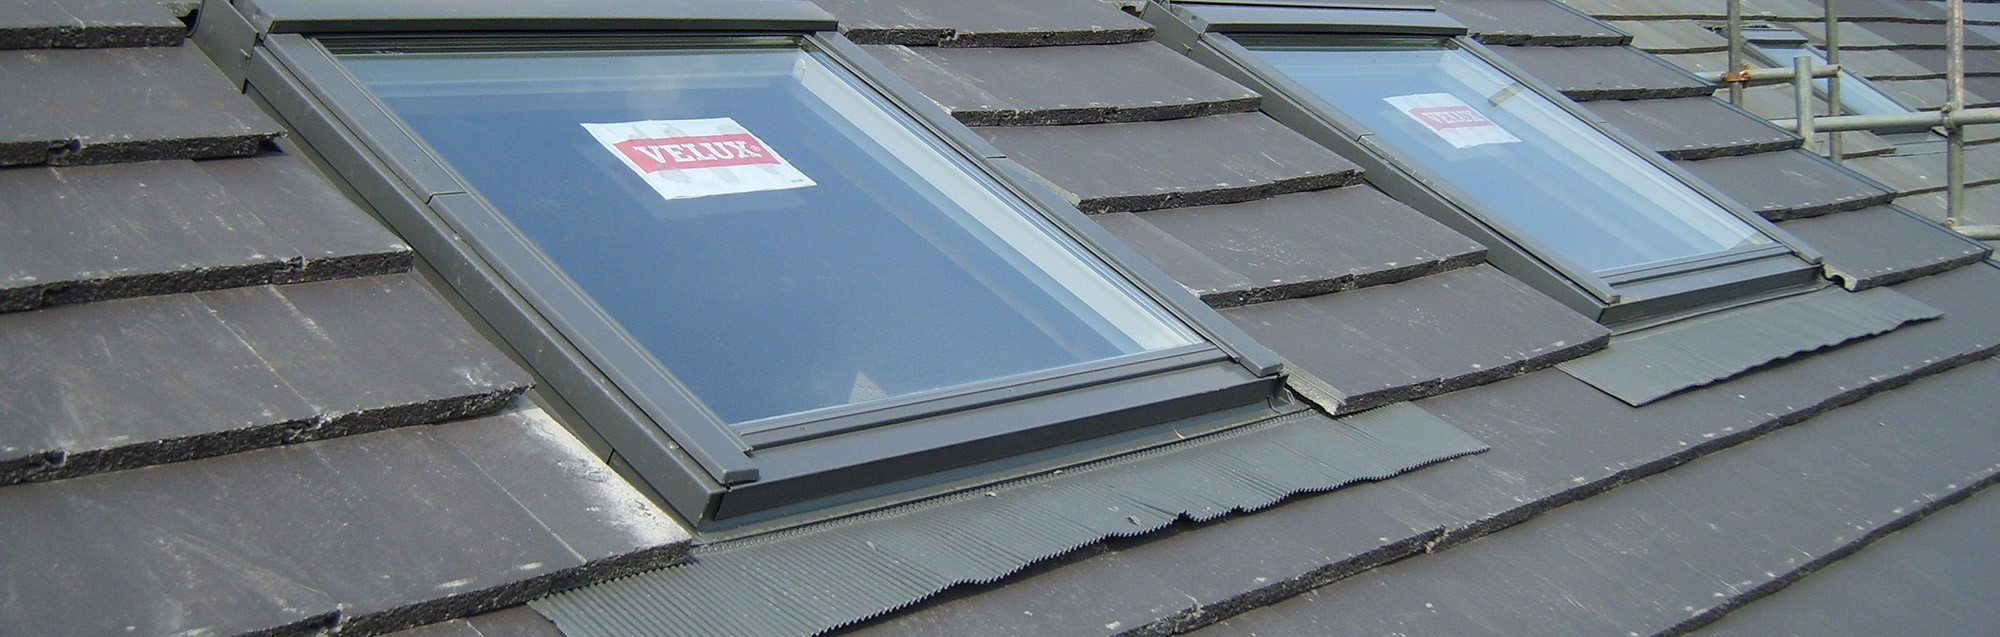 Velux fitters